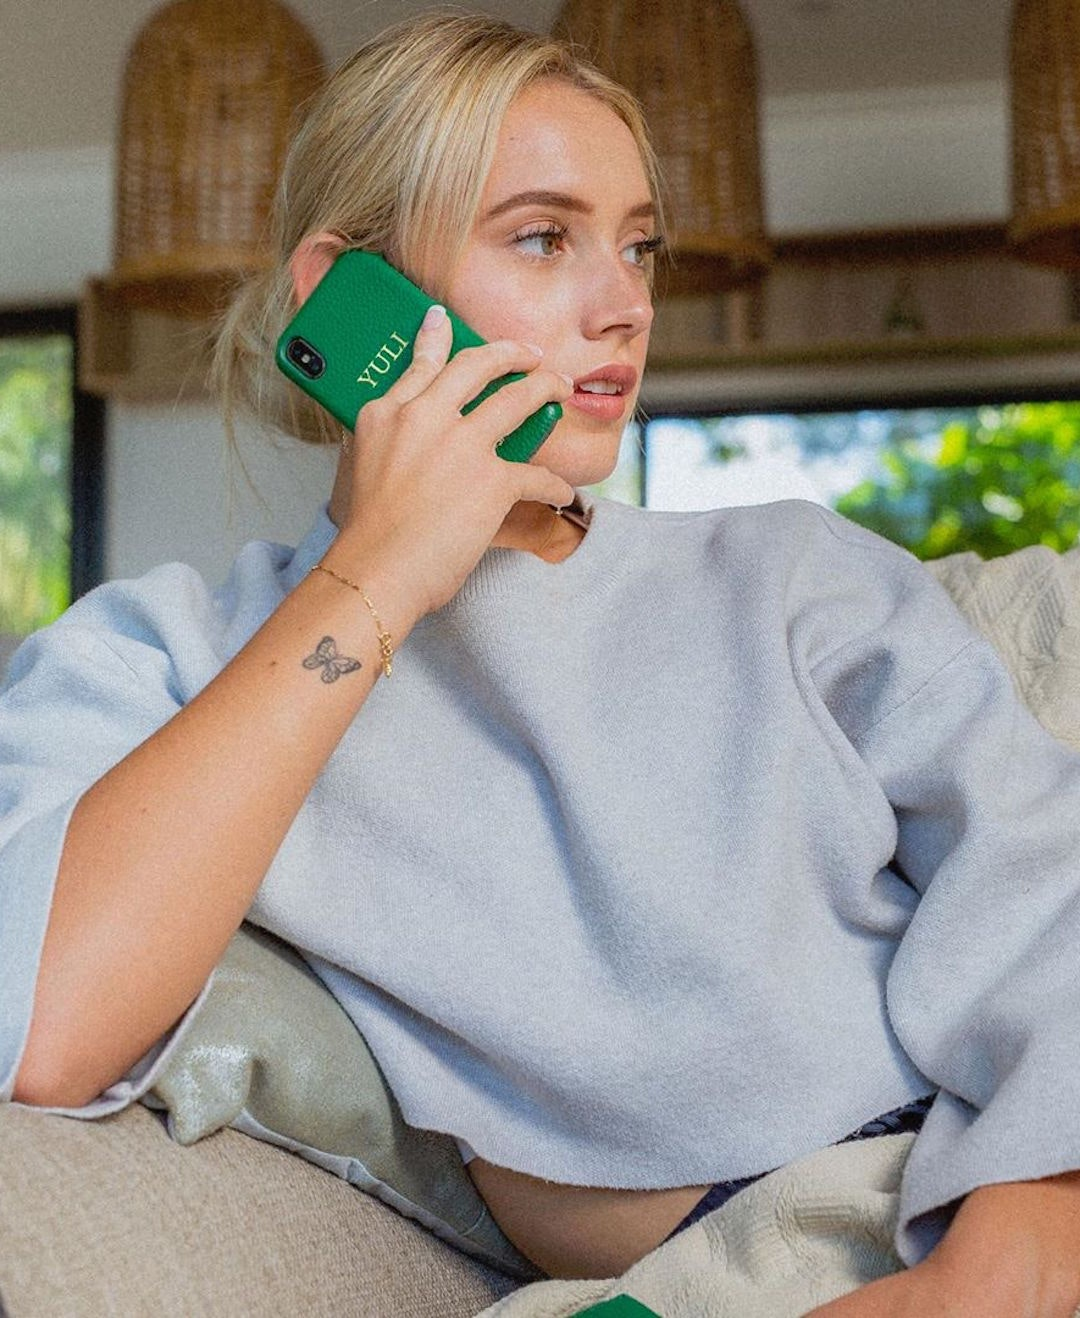 A blonde woman sits on the couch and holds an iPhone to her ear.